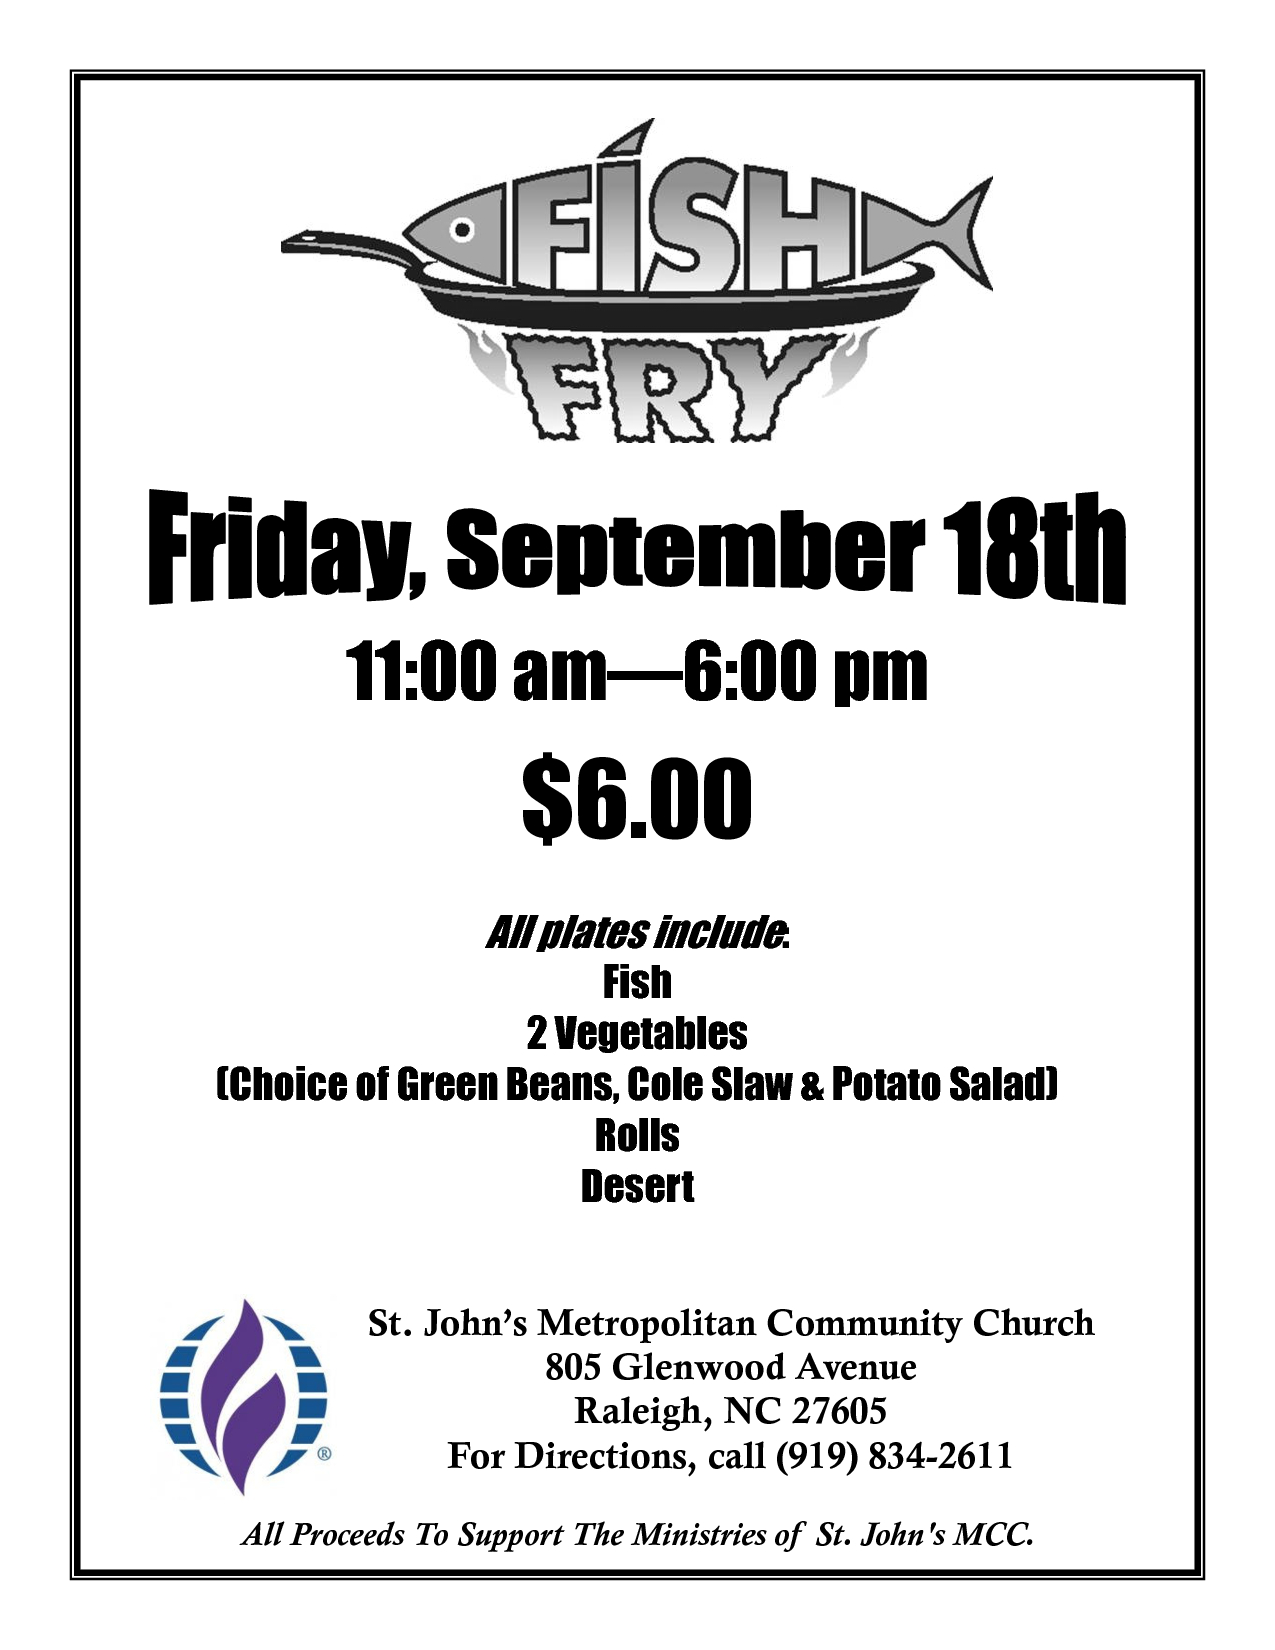 Free Fish-Fry Flyer Templates | Fish Fry Poster | Fish Fry | Fried - Free Printable Fundraiser Flyer Templates